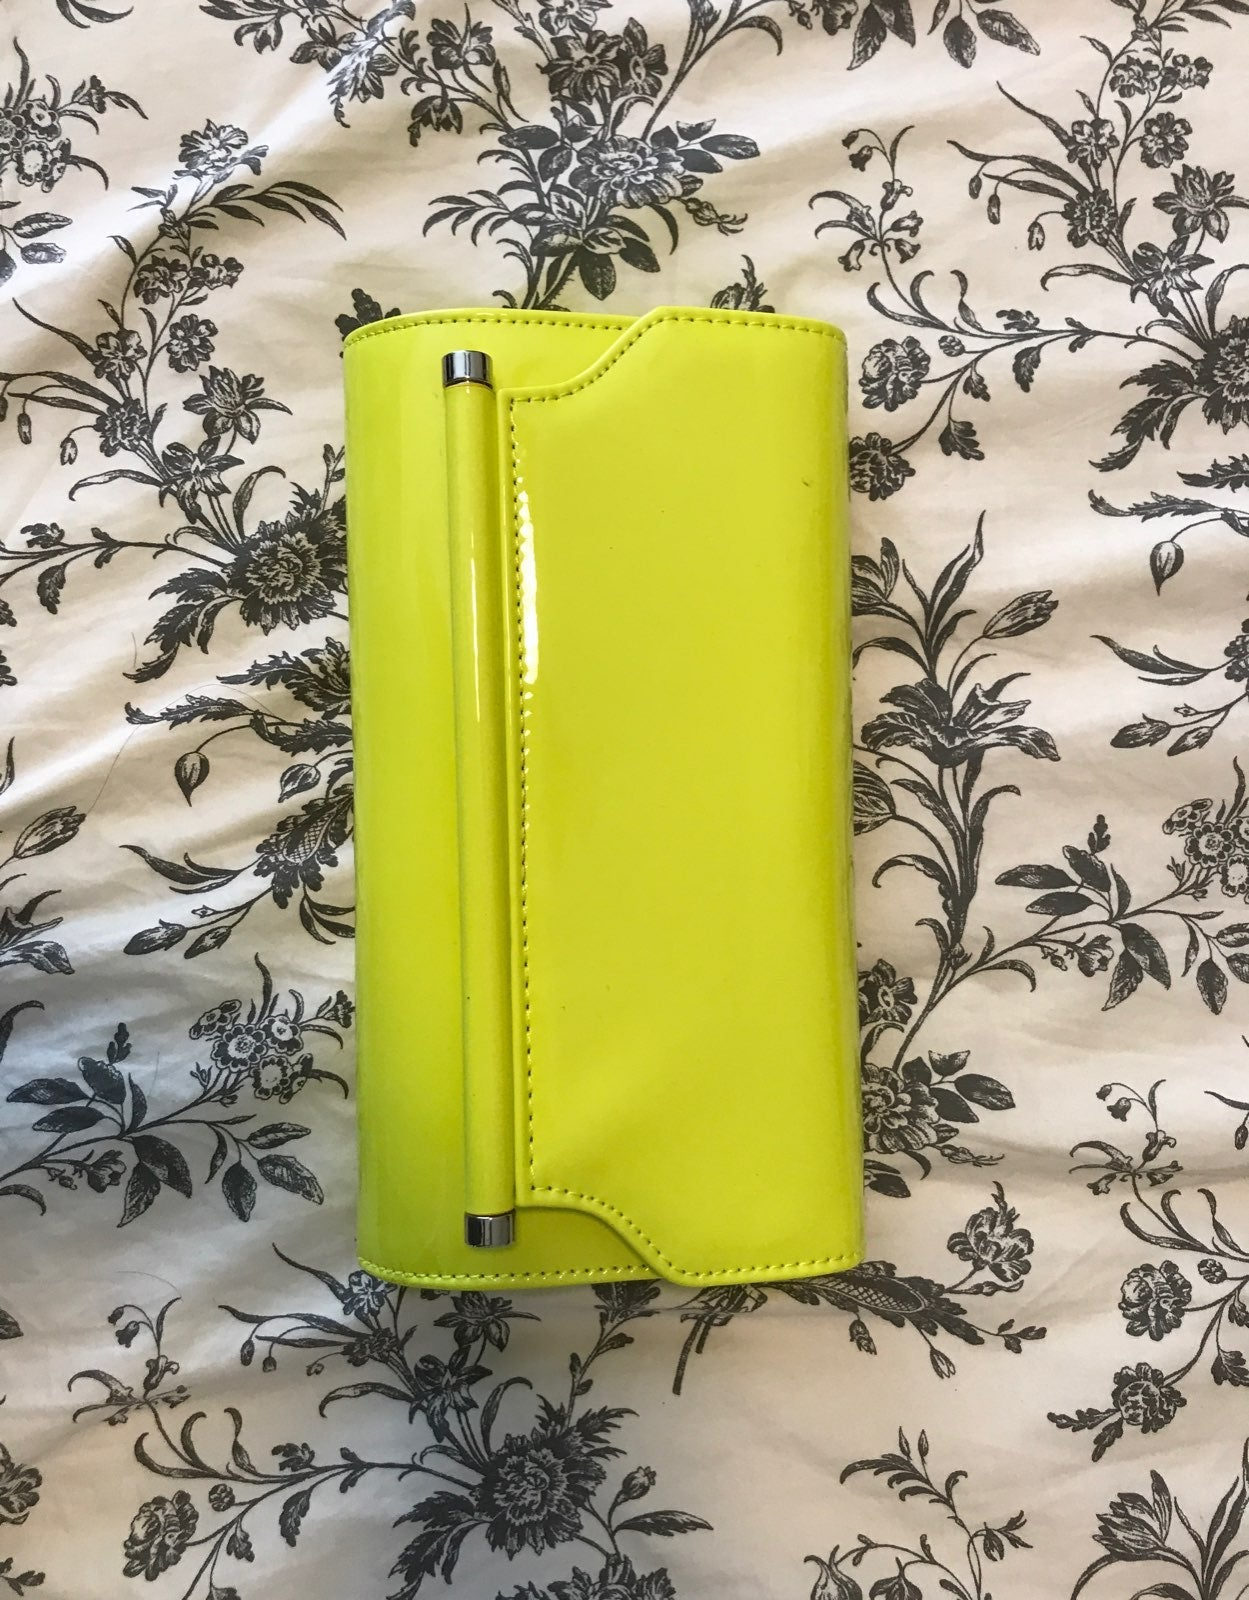 Neon Yellow/Green clutch with optional m